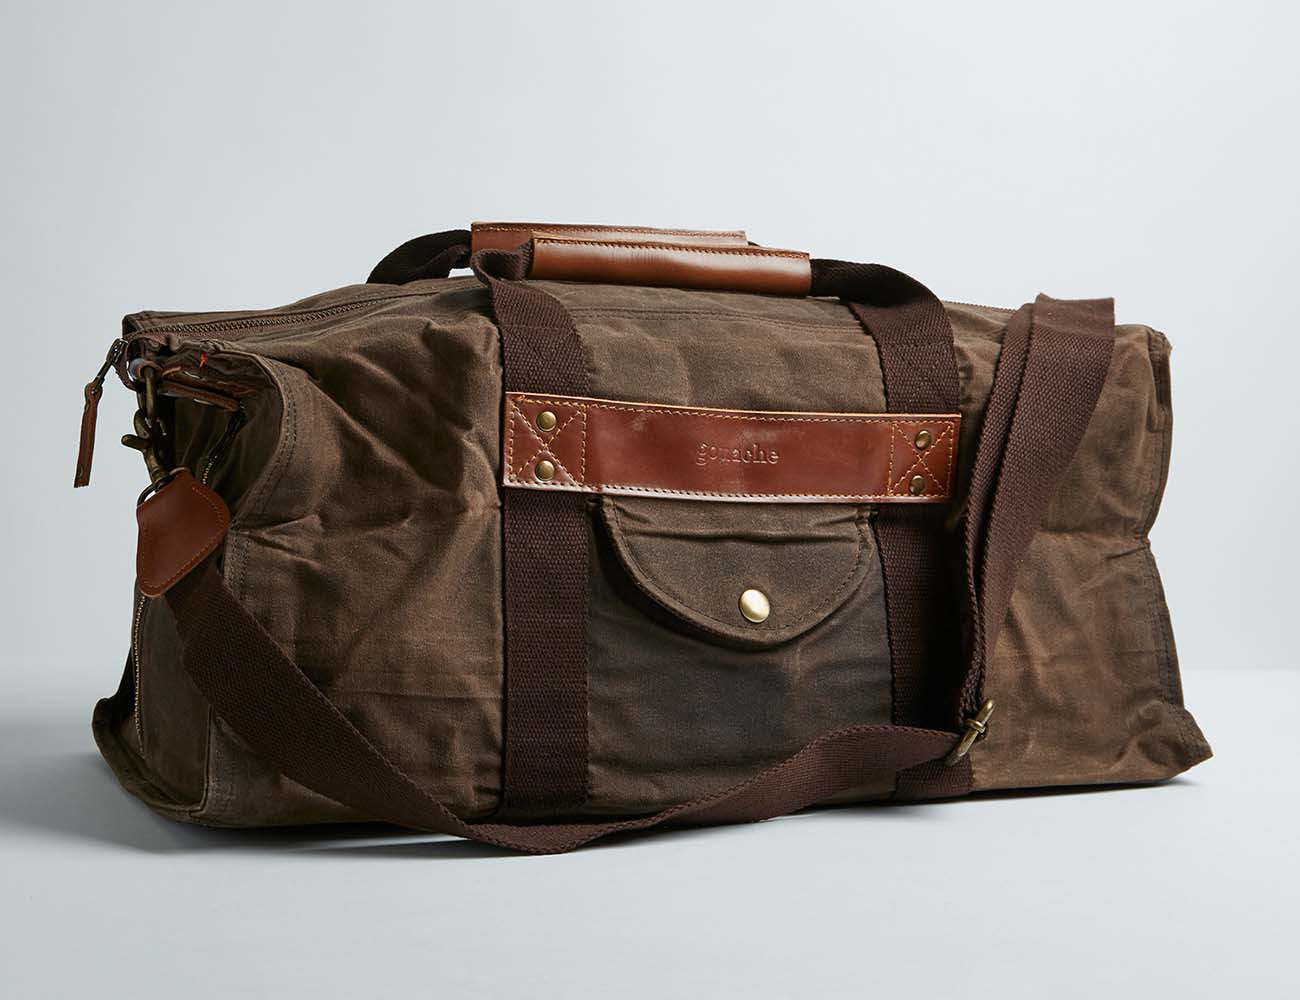 Hogarth Duffel Gym Bag by Gouache